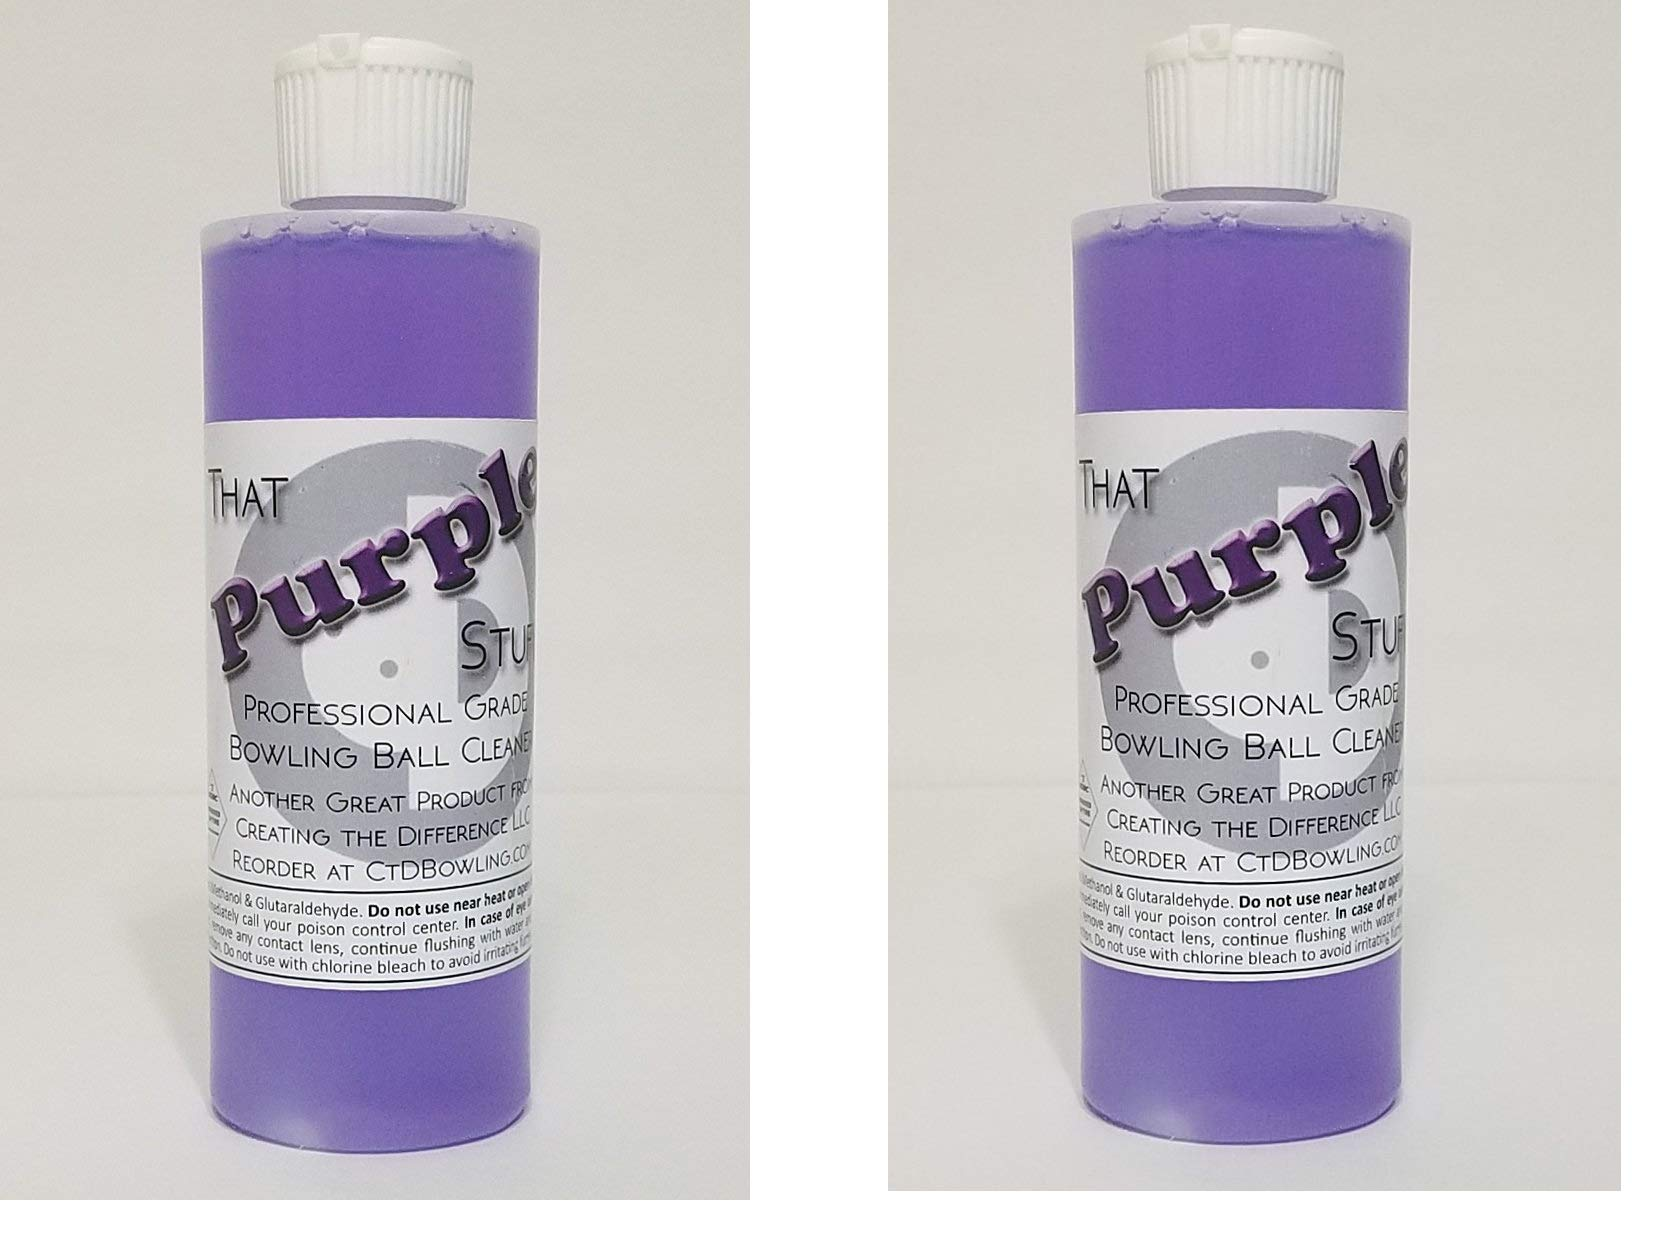 Creating the Difference That Purple Stuff Bowling Ball Cleaner | 8 oz Bottle (2-Pack)